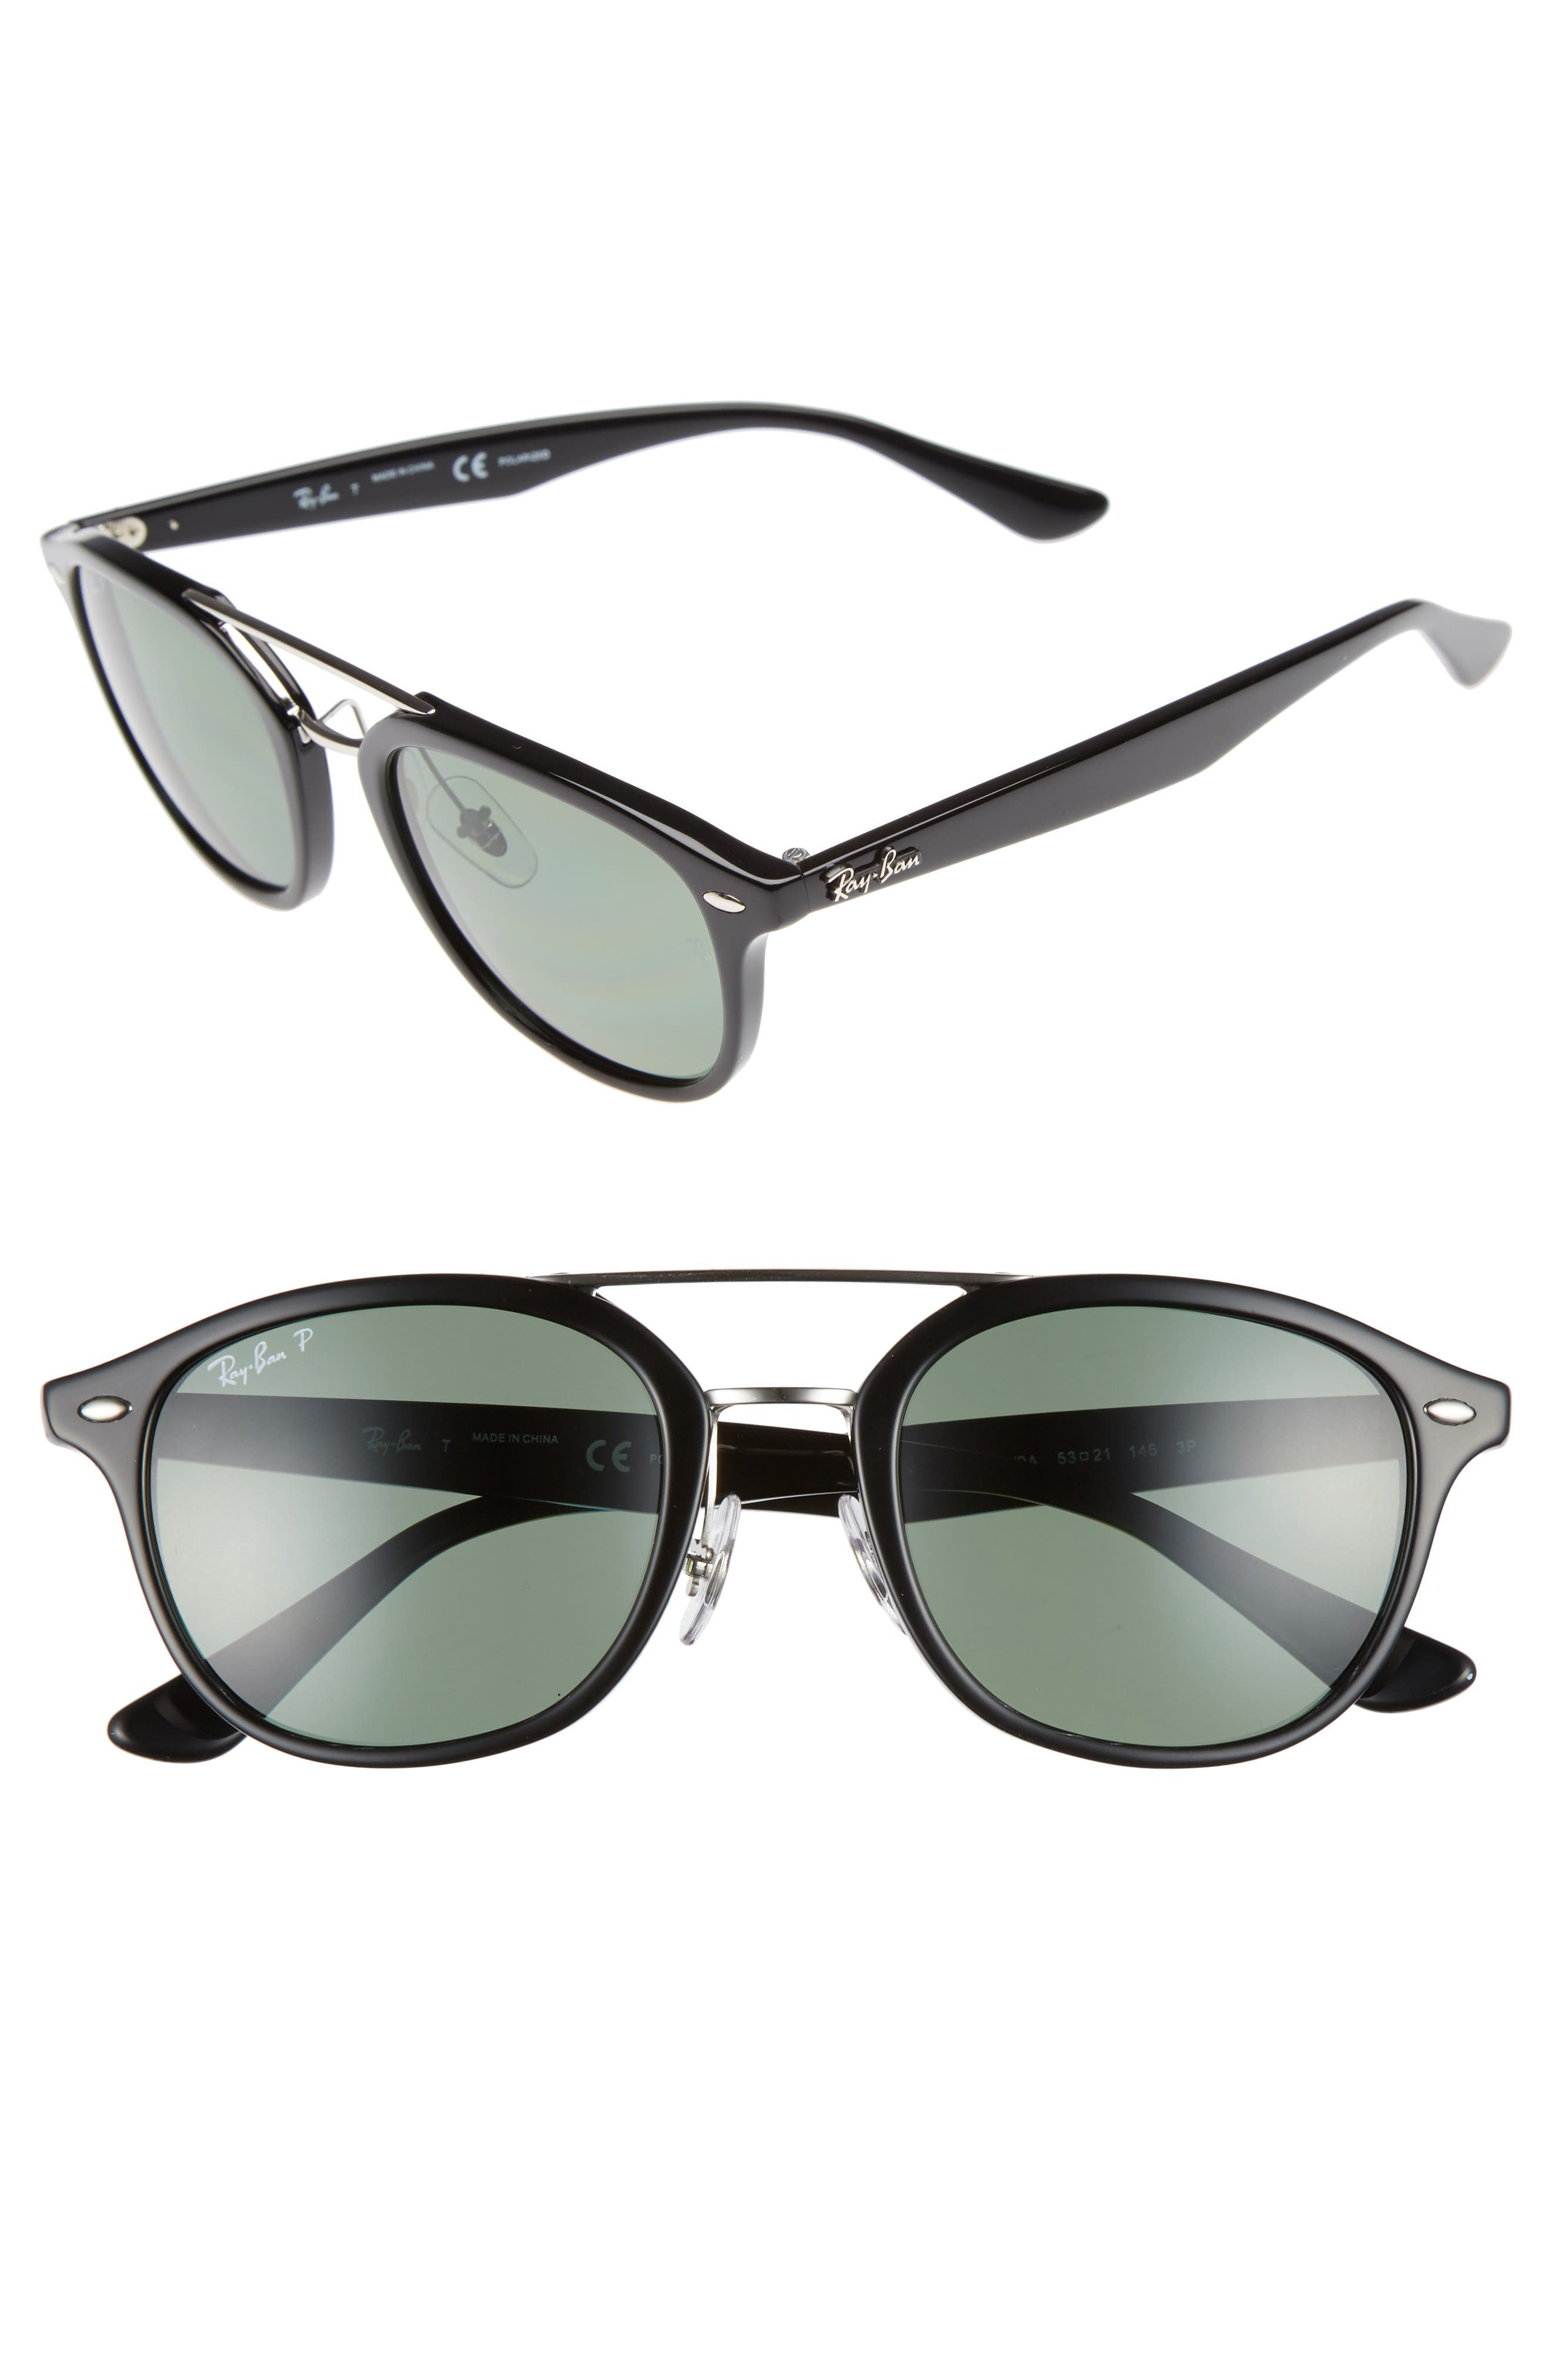 53mm Polarized Sunglasses,                             Main thumbnail 1, color,                             Black